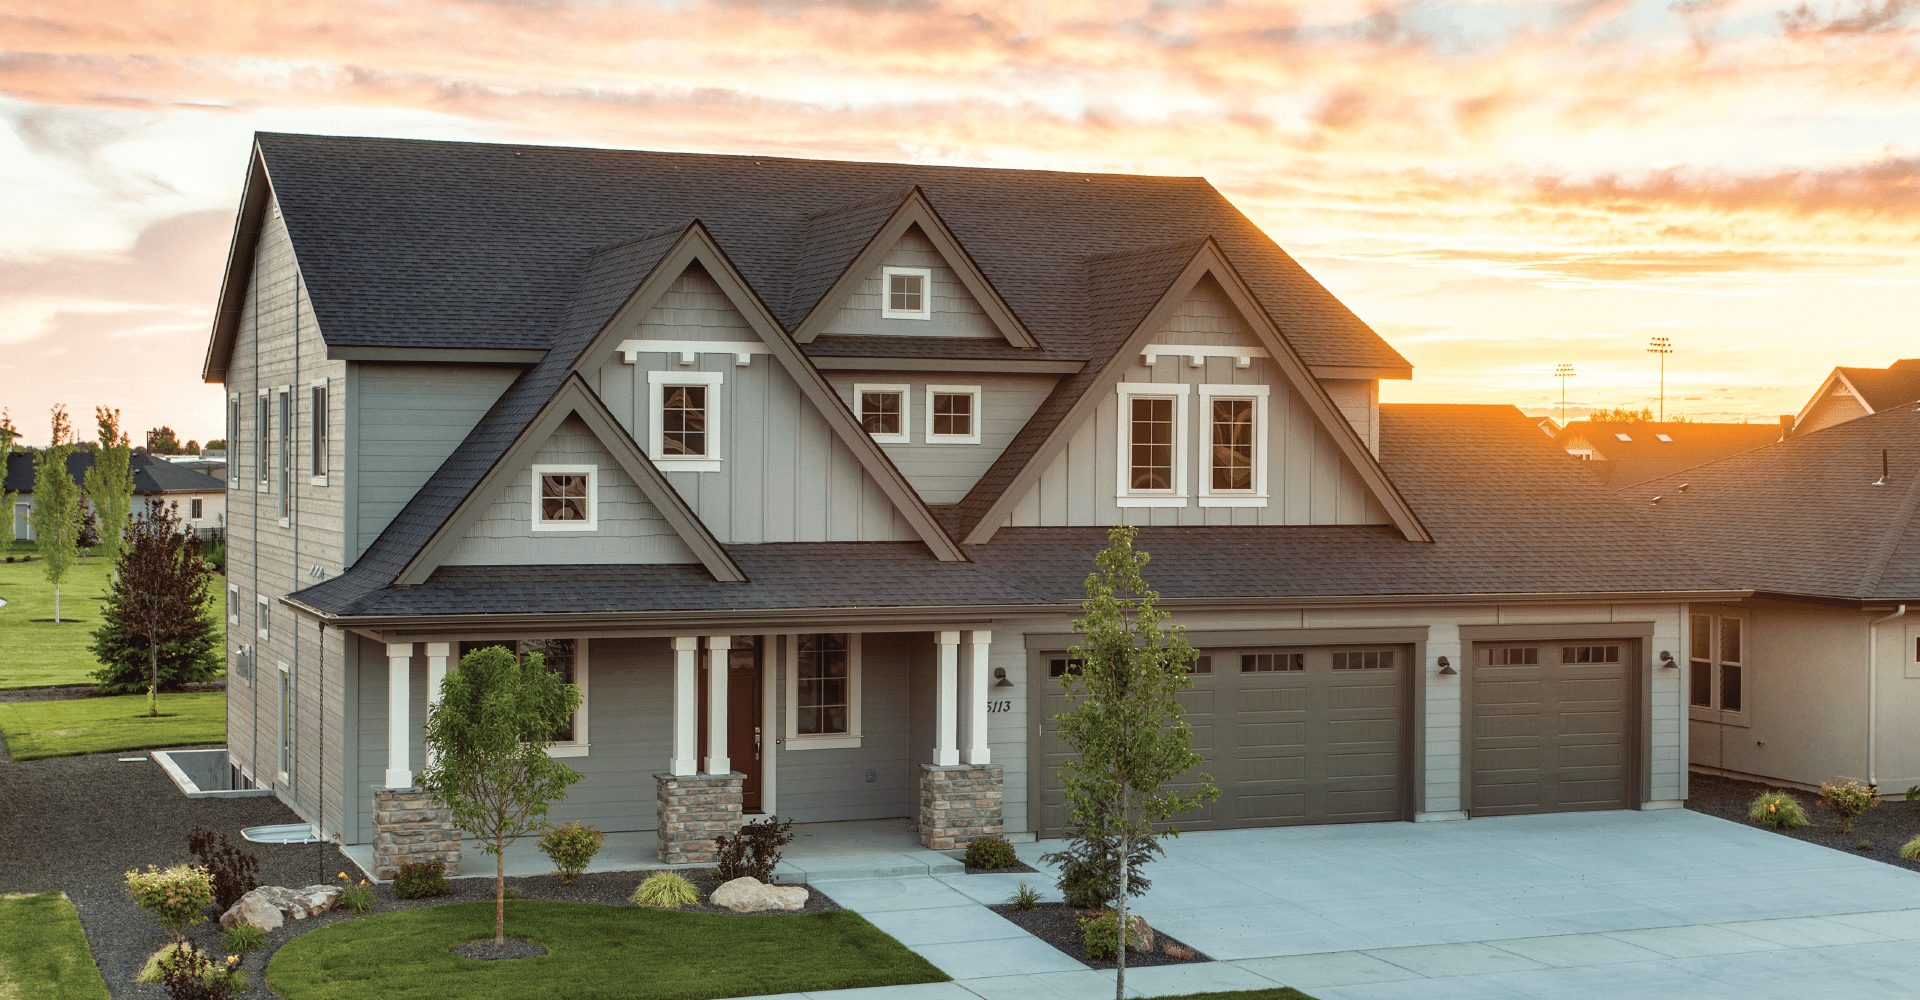 Thinking About Downsizing Your Home